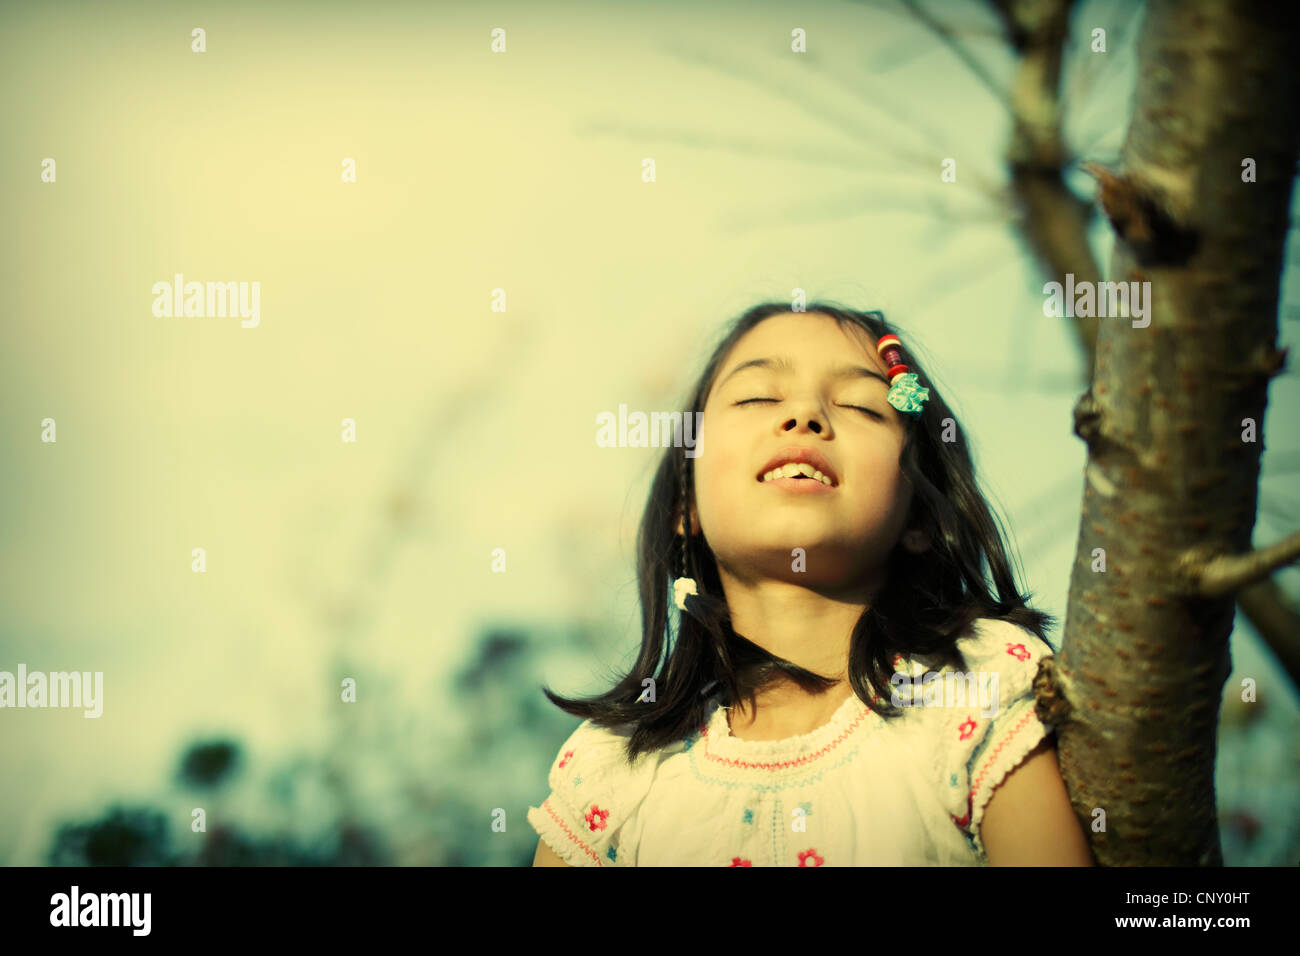 Girl basks in evening sun - Stock Image